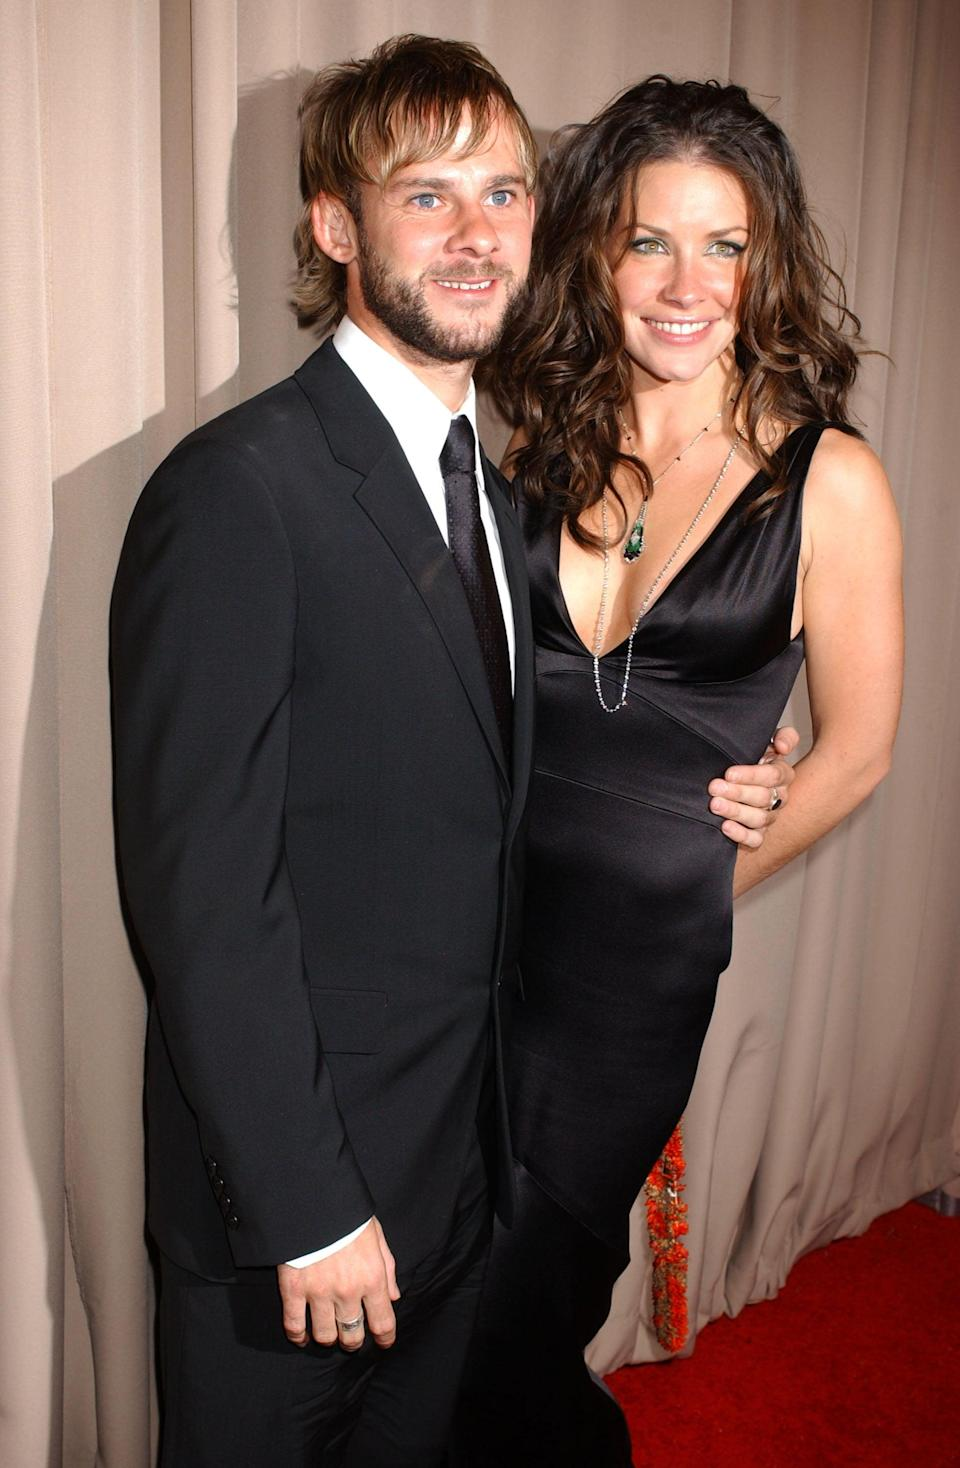 "<p>Evangeline and Dominic connected on the set of<strong> Lost</strong>, and though their characters, Kate and Charlie, never got together, the actors dated from 2004 to 2007. After deciding to call it quits, both actors remained on the series until its finale in 2010, although Dominic didn't appear in season five and only appeared in flashbacks in season six. </p> <p>The pair never explicitly commented on their breakup or their experience working together on <strong>Lost </strong>afterward, but Dominic <em>did </em>seem to shade Evangeline years later. In 2013, <a href=""http://twitter.com/domswildthings/status/413398258979860481"" class=""link rapid-noclick-resp"" rel=""nofollow noopener"" target=""_blank"" data-ylk=""slk:Dominic replied to a tweet"">Dominic replied to a tweet</a> that read, ""Evangeline looked unreal in The Hobbit, man oh man,"" writing, ""Nah. I don't date cheaters."" </p>"